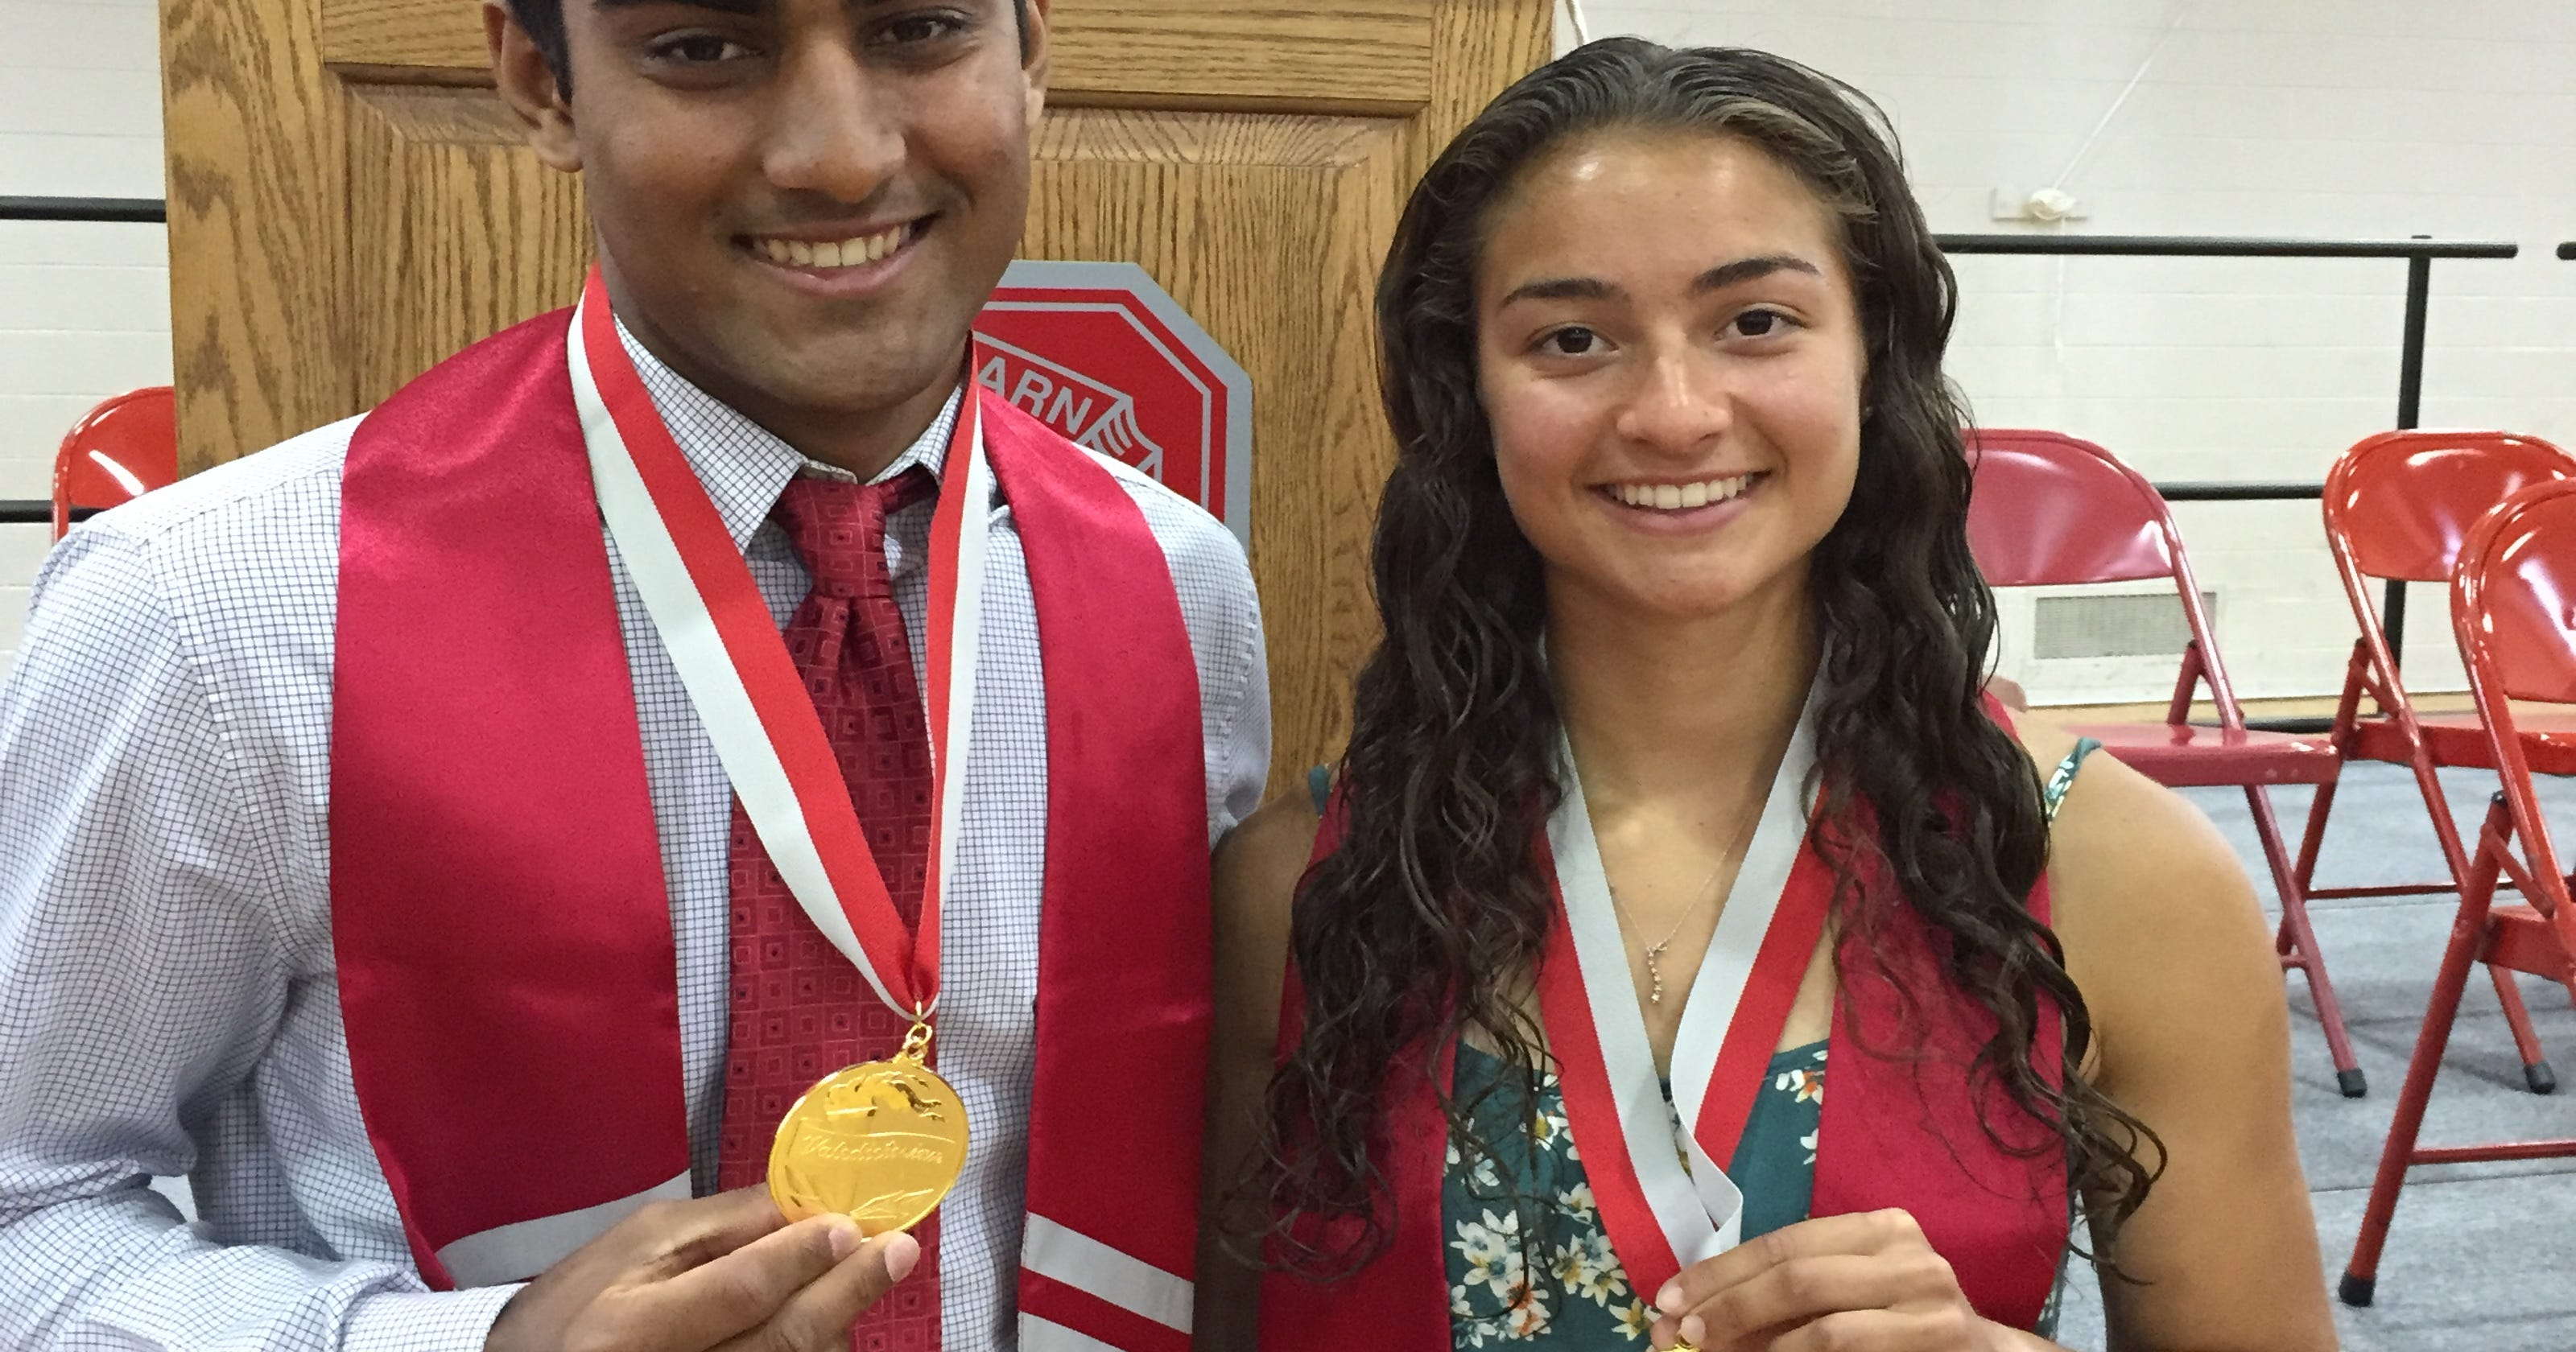 Patel named VHS Class of '15 valedictorian